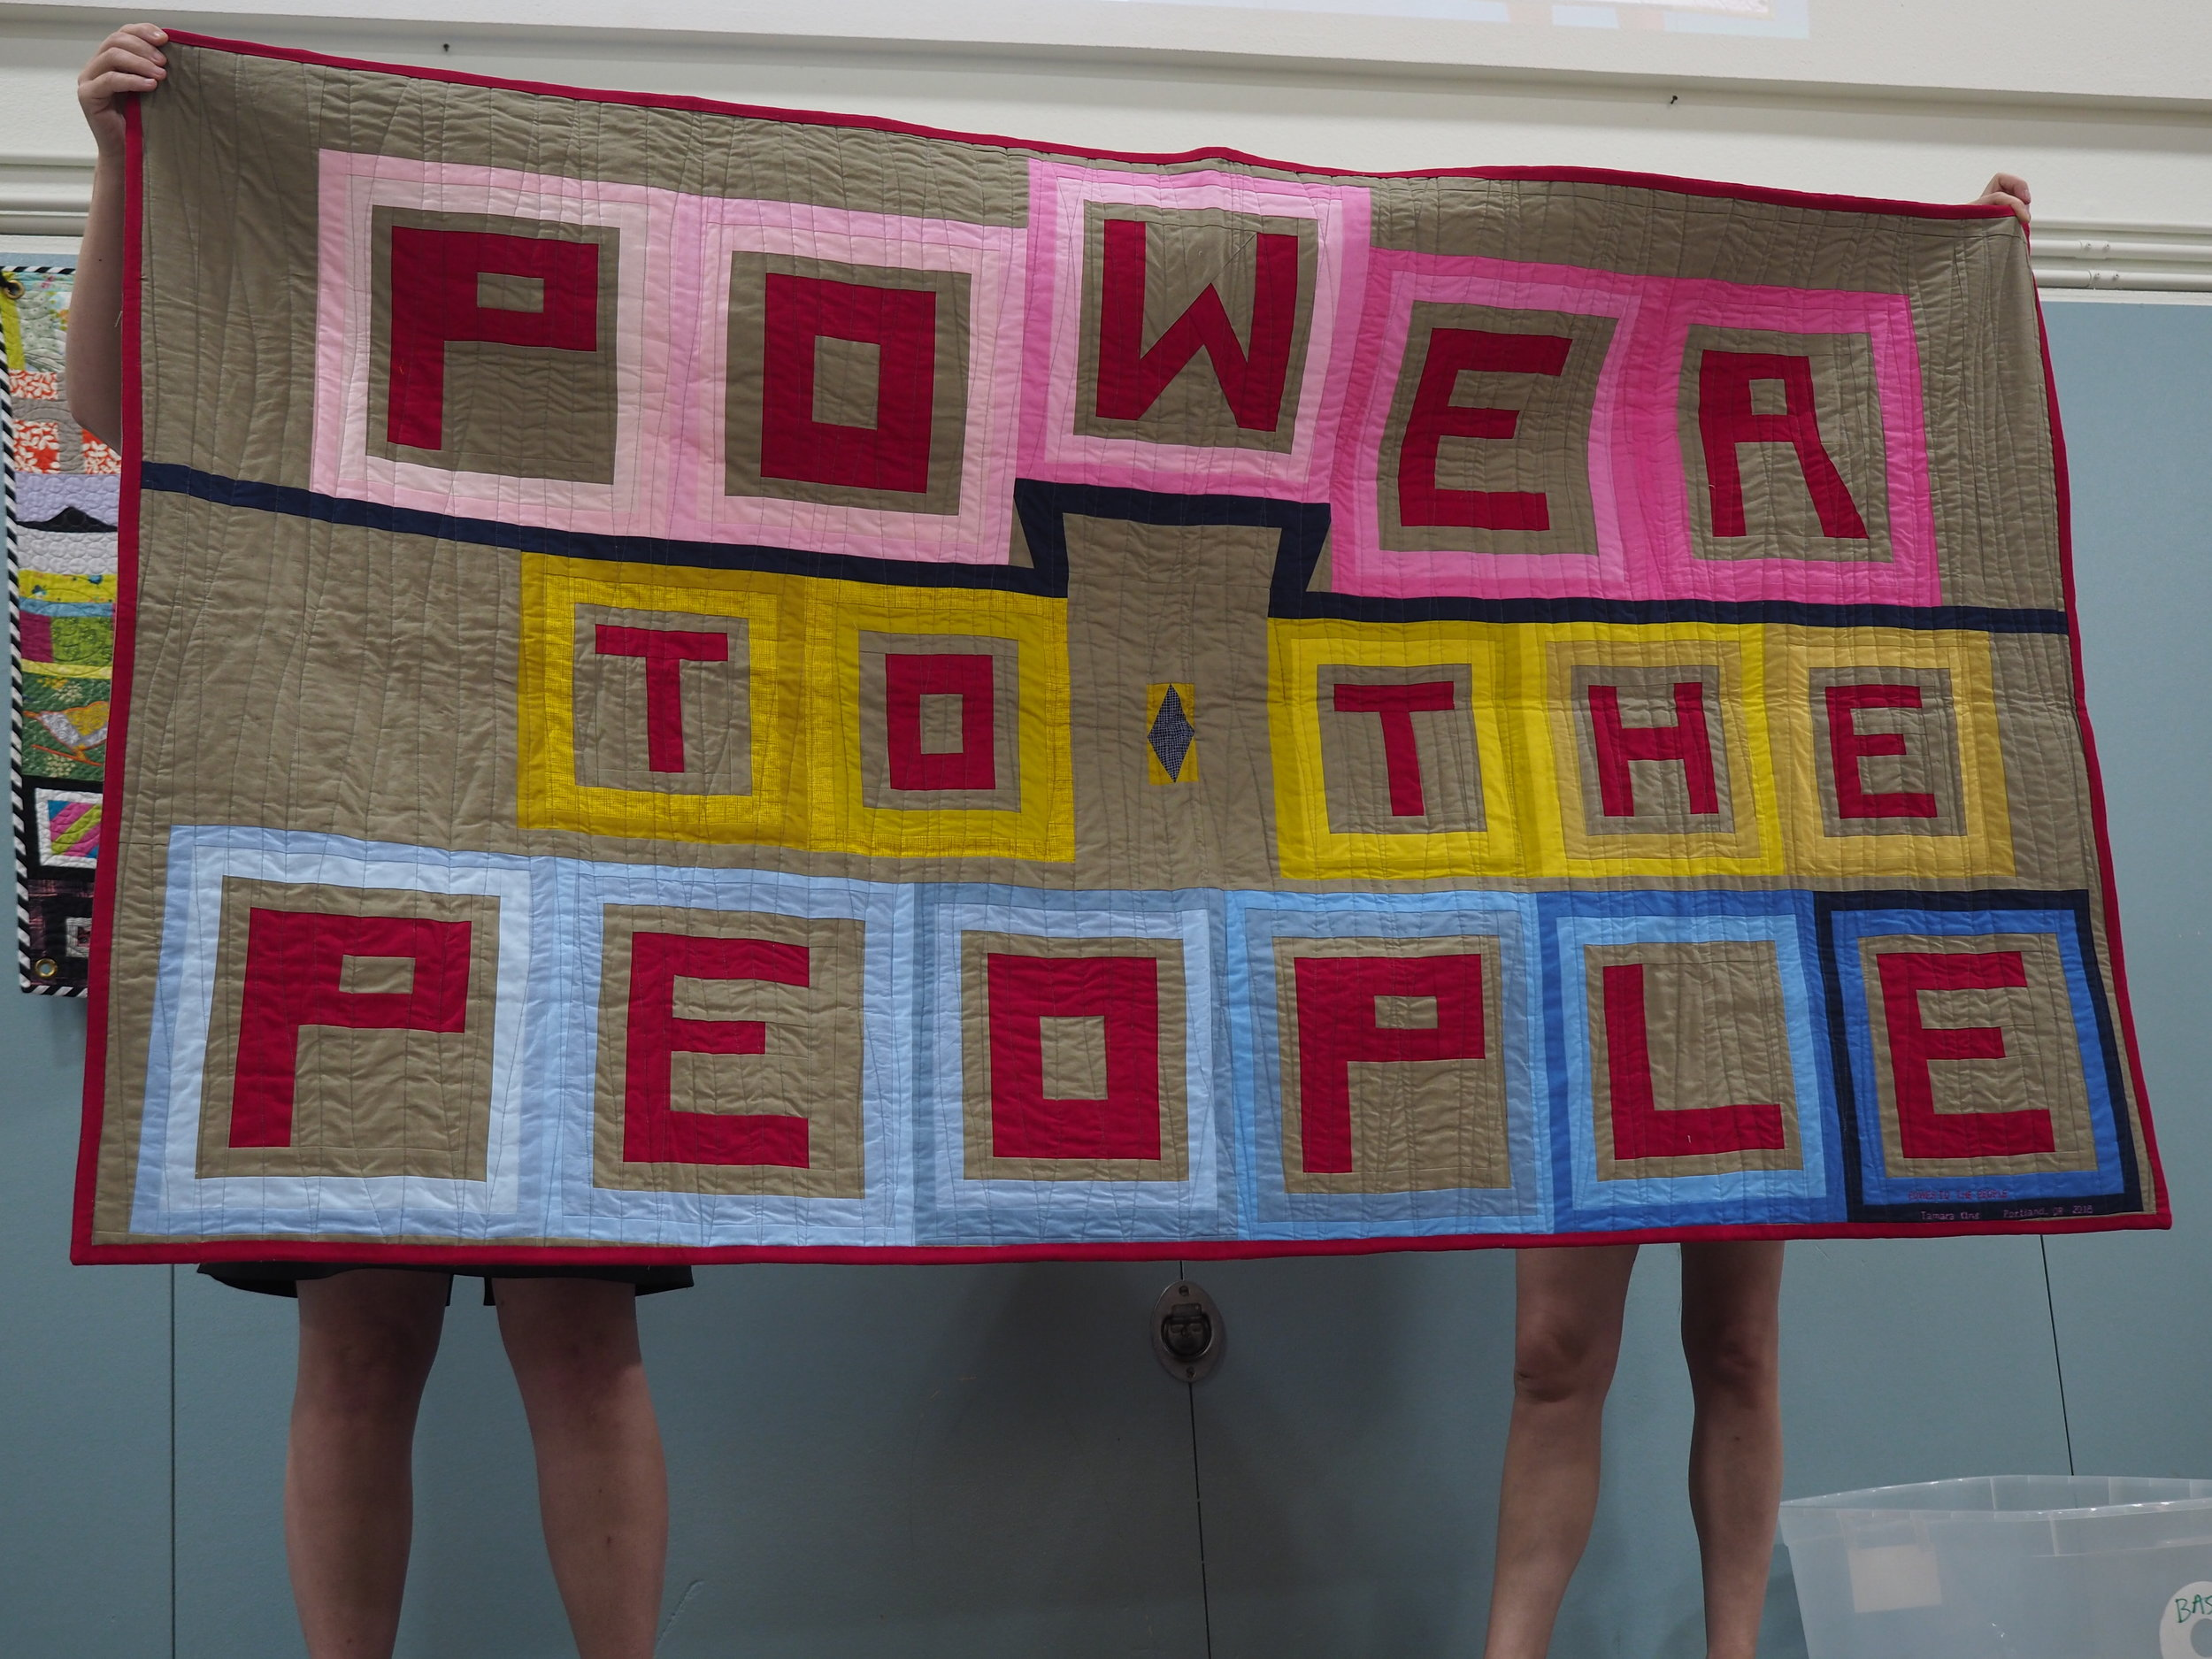 Power to the People Reverse by Tamara King